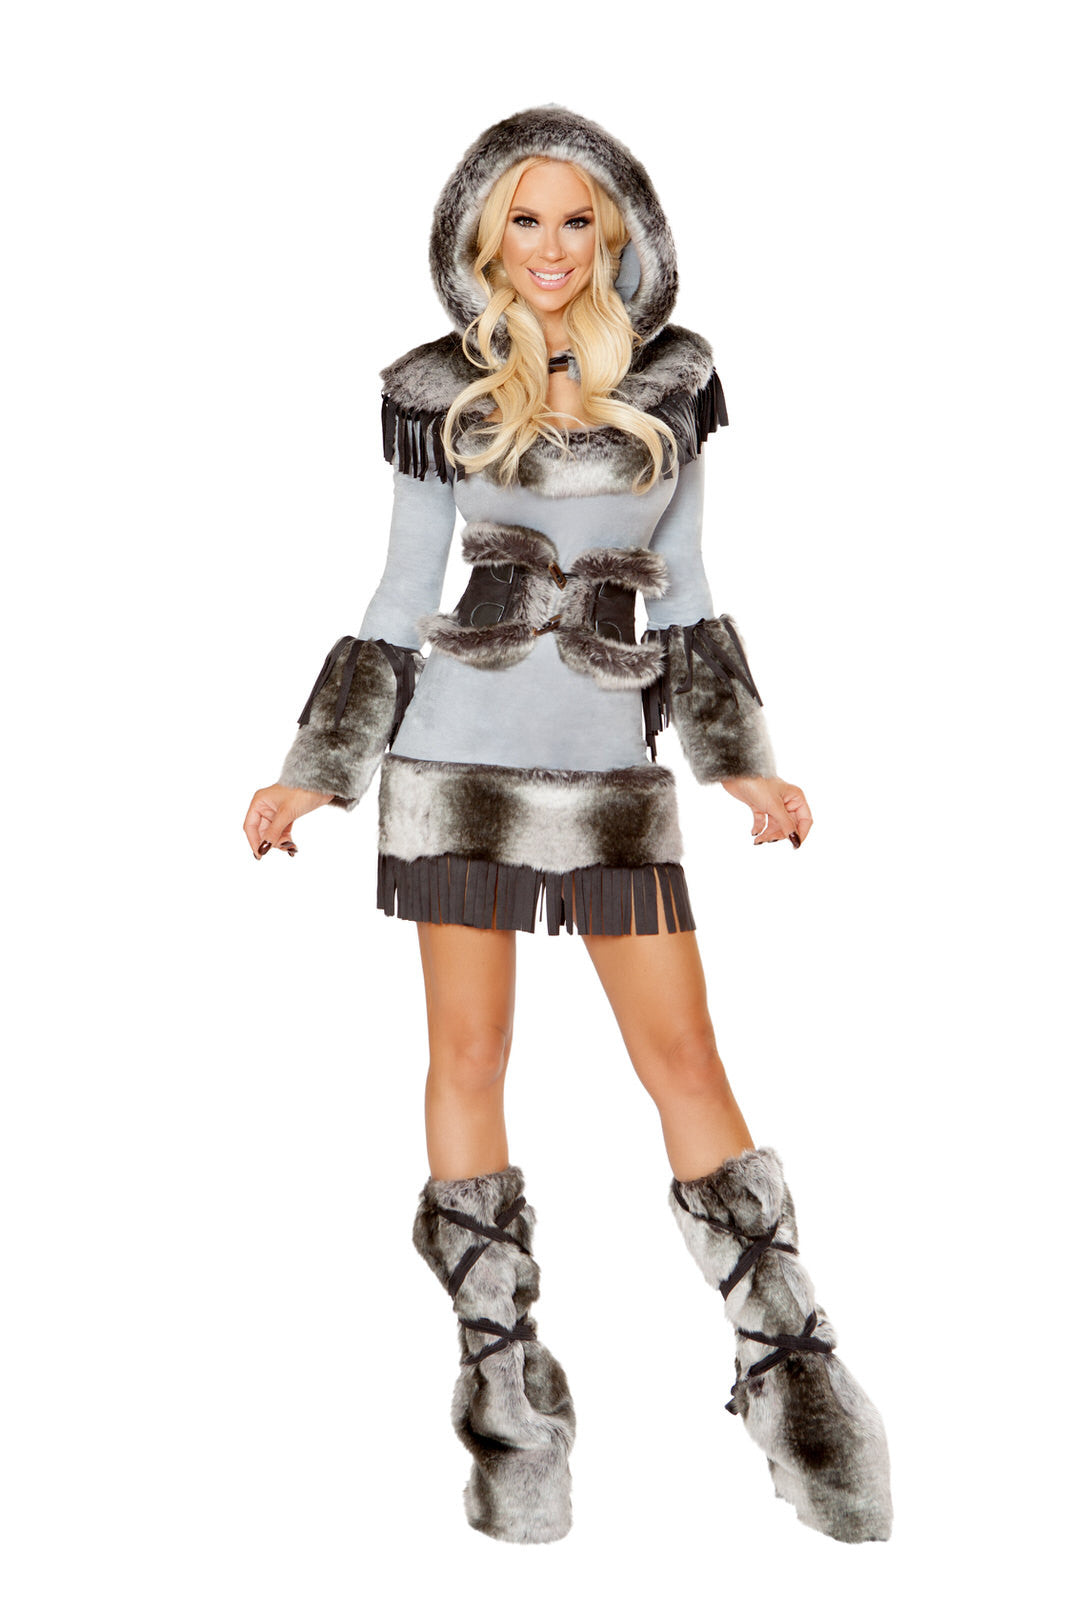 4809 - 3pc Eskimo Cutie ${description} | Roma Costume and Roma Confidential wholesale manufacturer of Women Apparel bulk world wide wholesale and world wide drop ship services for Adult Halloween Costumes, Sexy and Elegant Lingerie, Rave Clothing, Club wear, and Christmas Costumes. Costumes, Roma Costume, Inc., Roma Costume, Roma Confidential, Wholesale clothing, drop ship, drop ship service, Wholesale Lingerie, Wholesale Adult Halloween Costumes, Rave Clothing, EDM Clothing, Festival Wear, Christmas Costumes, Clubwear, Club wear.